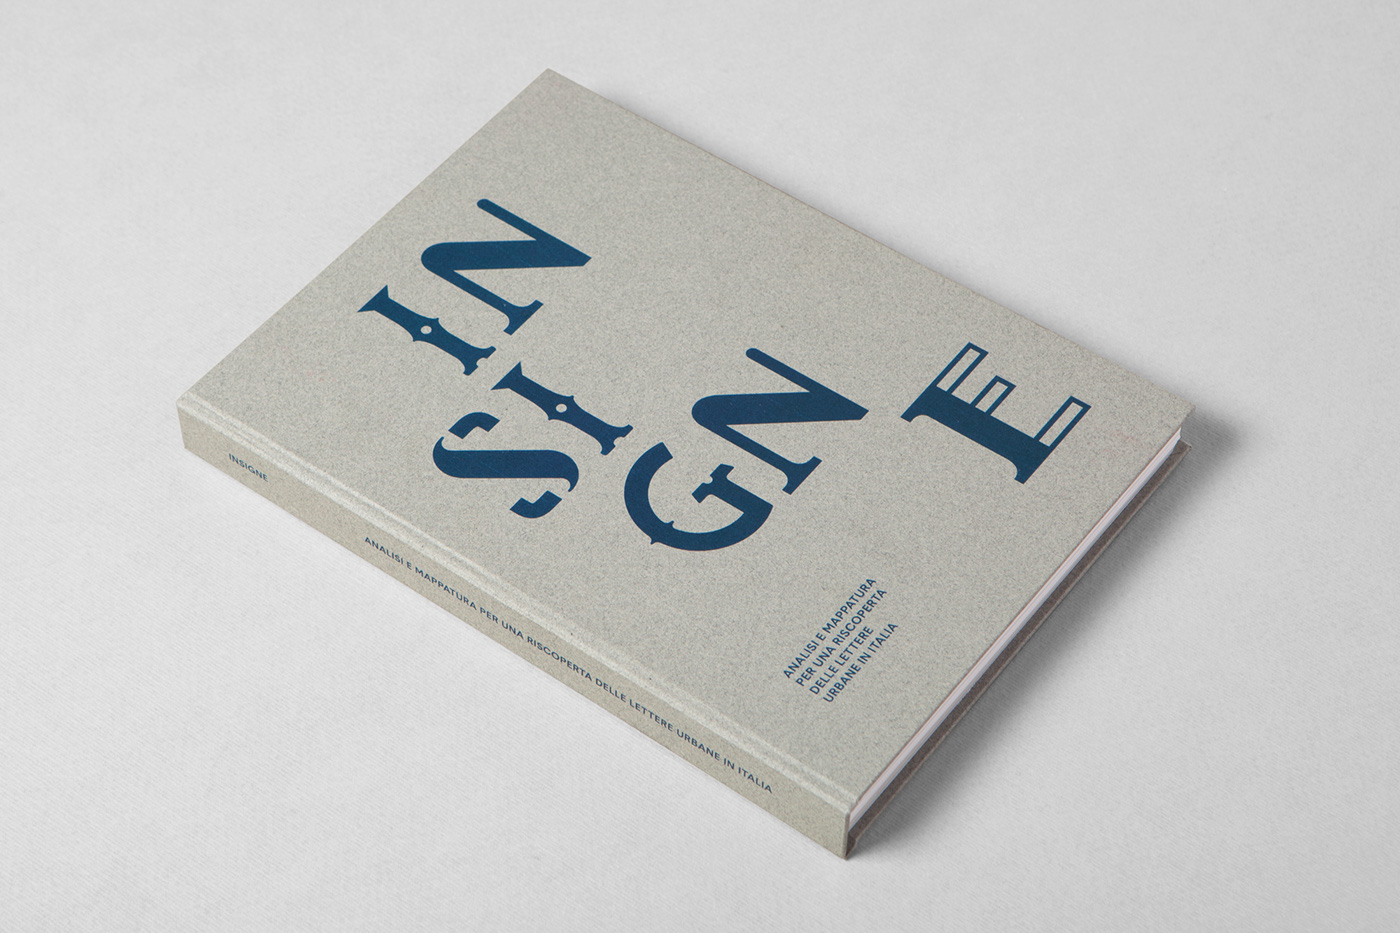 letters,lettering,sign-painting,insigne,type,Typeface,font,book,binding,hardbound